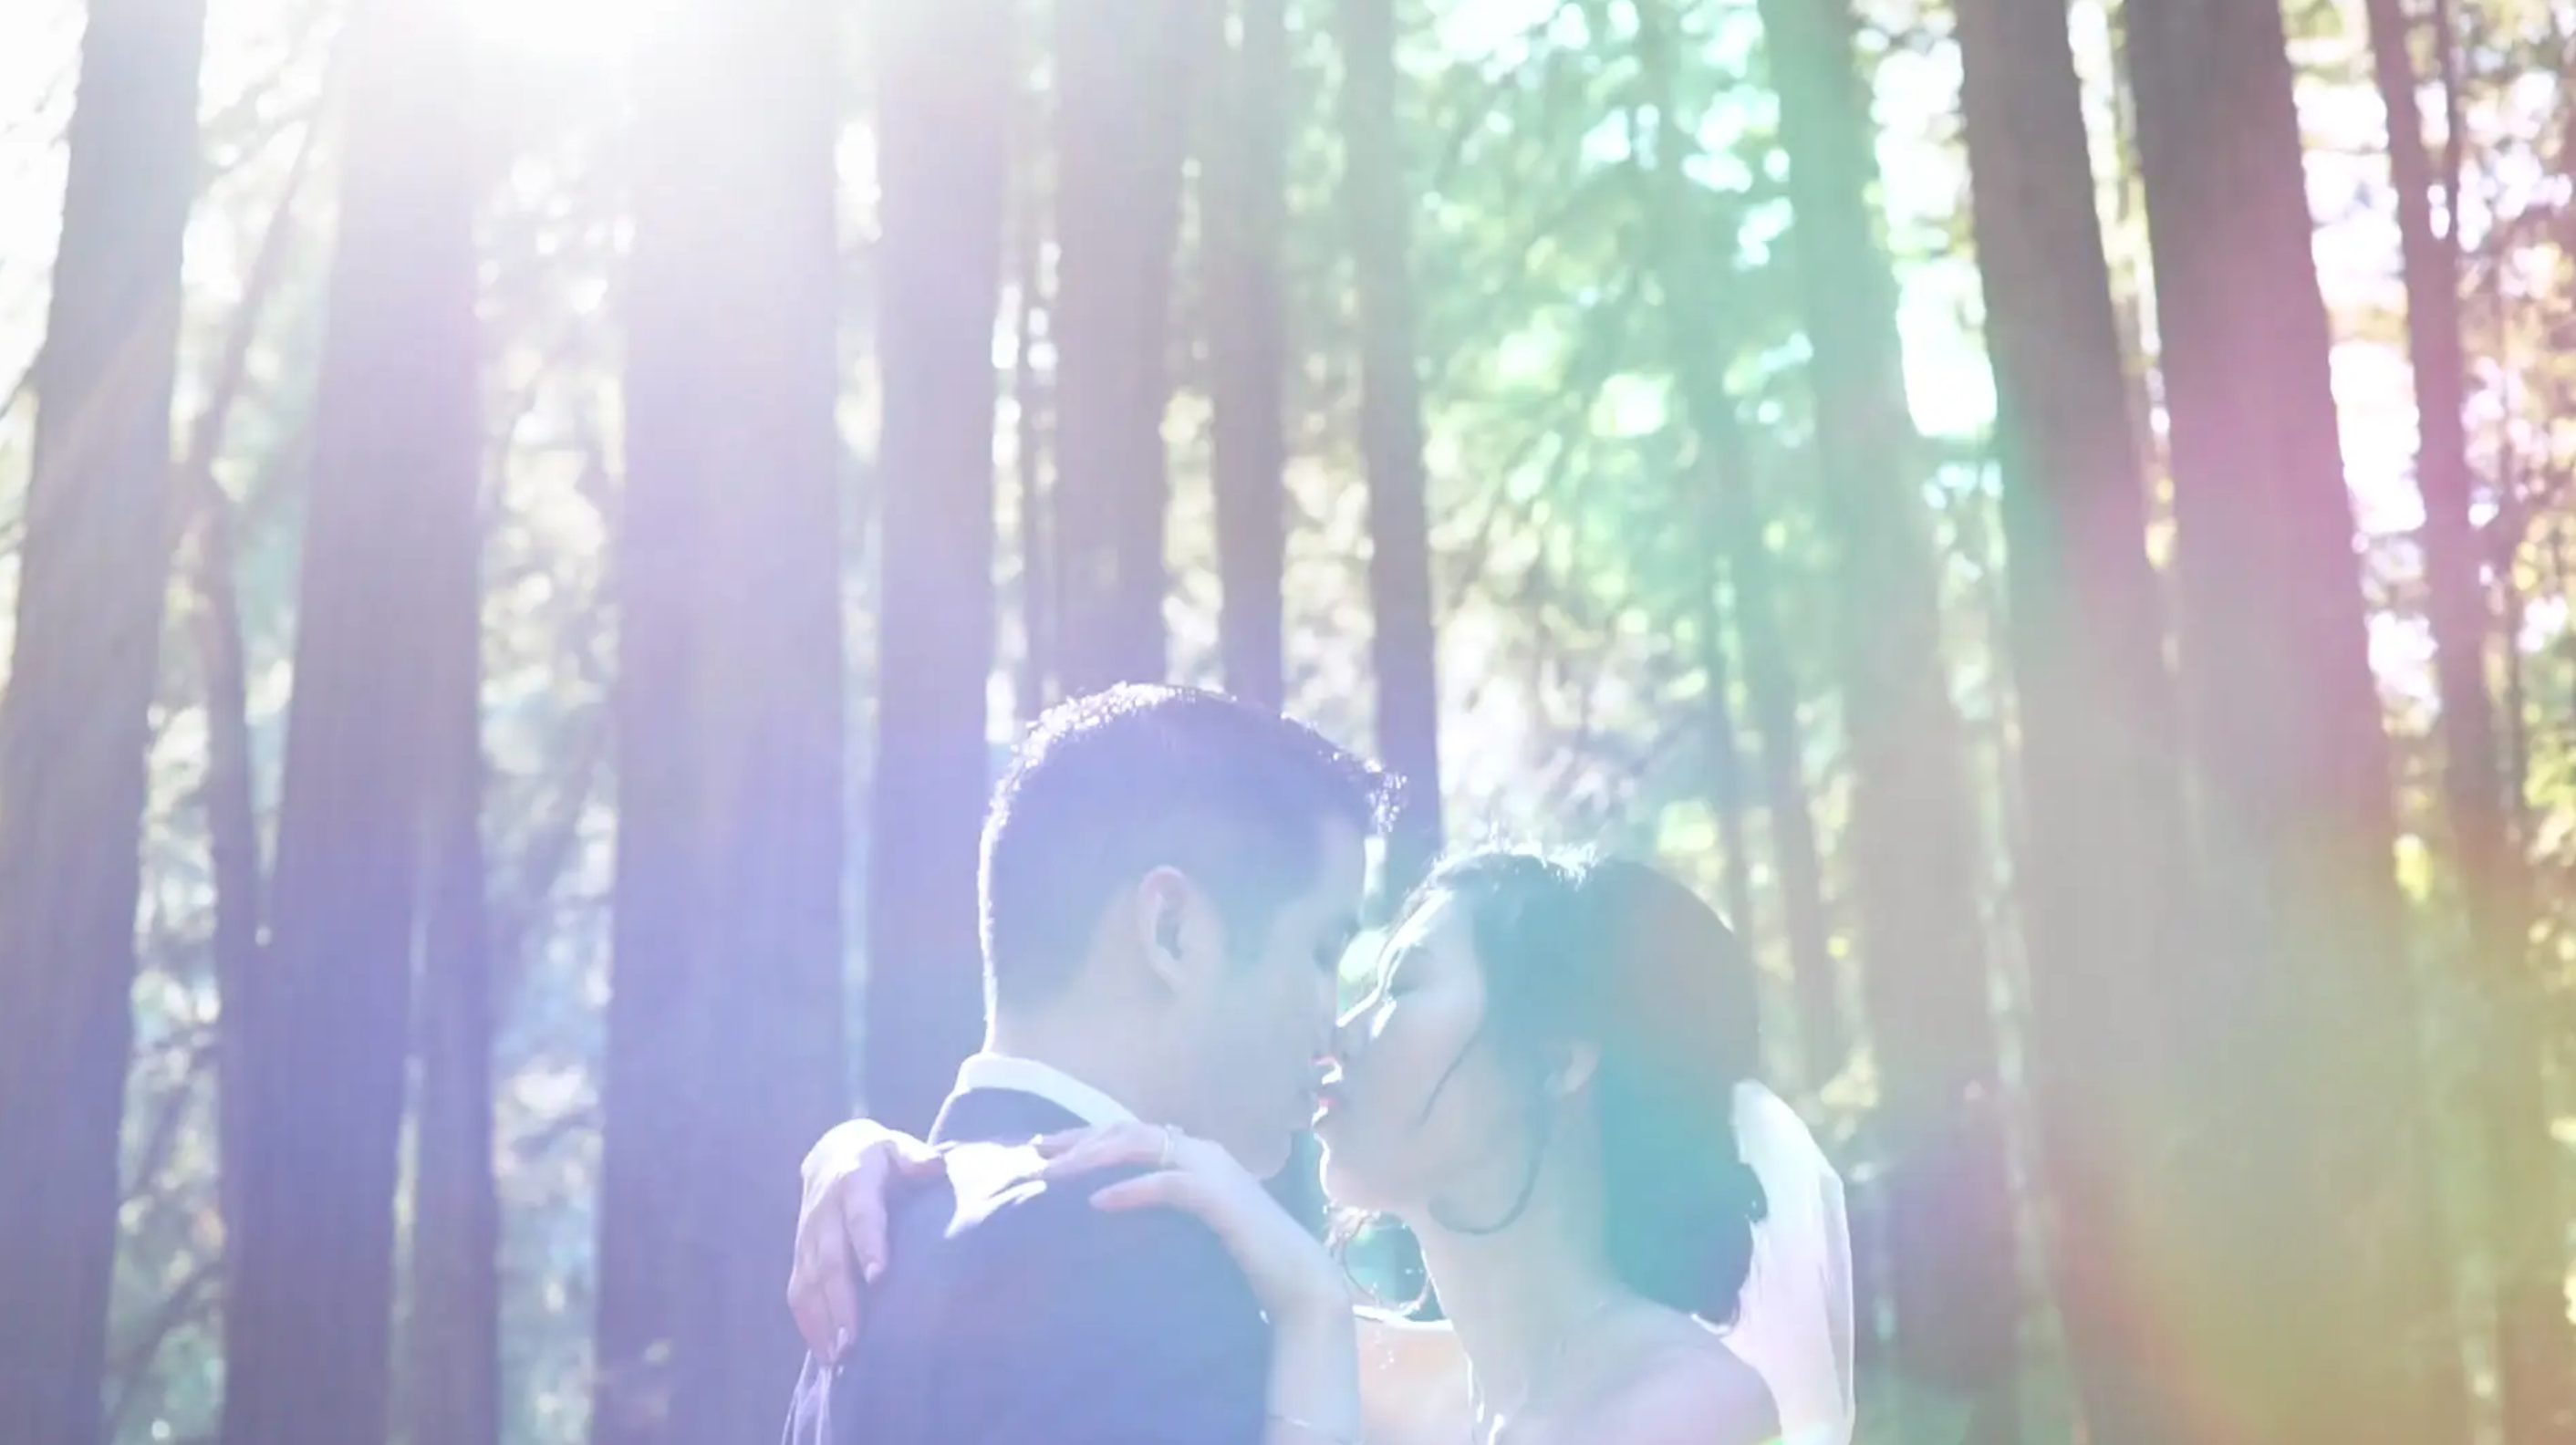 Yao + Alan | Mill Valley, California | The Outdoor Art Club